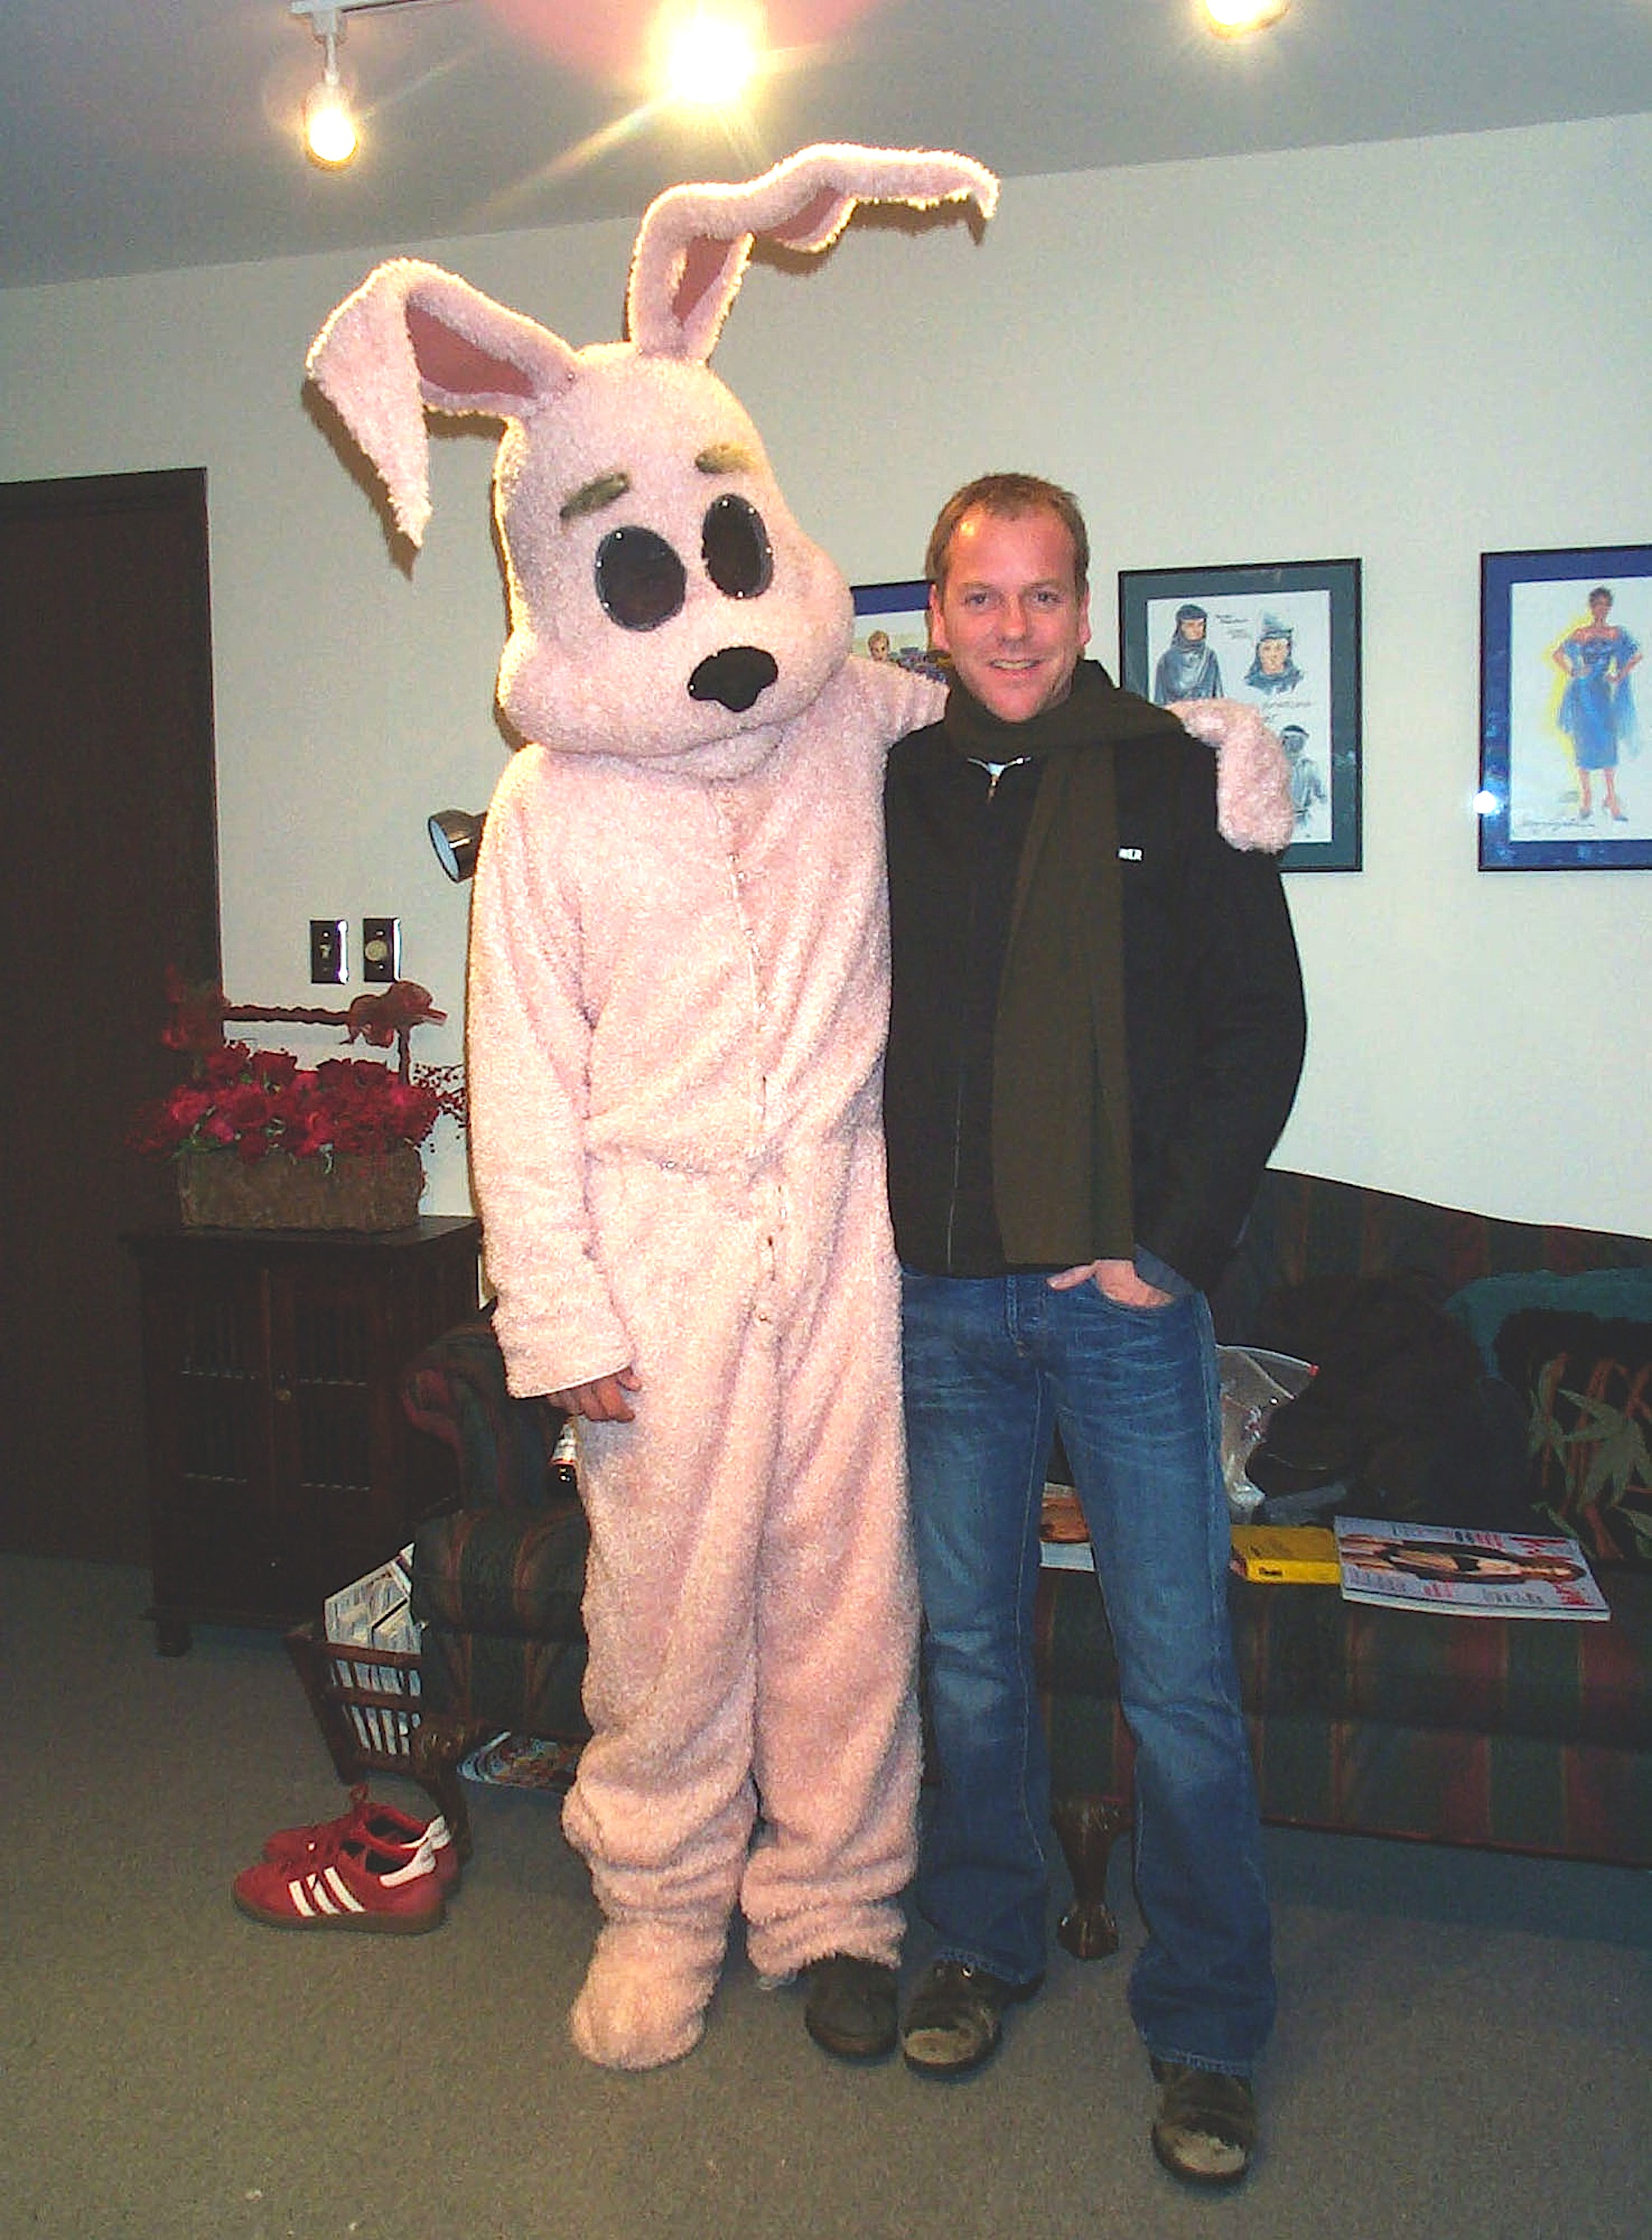 Keifer and bunny #1.jpg